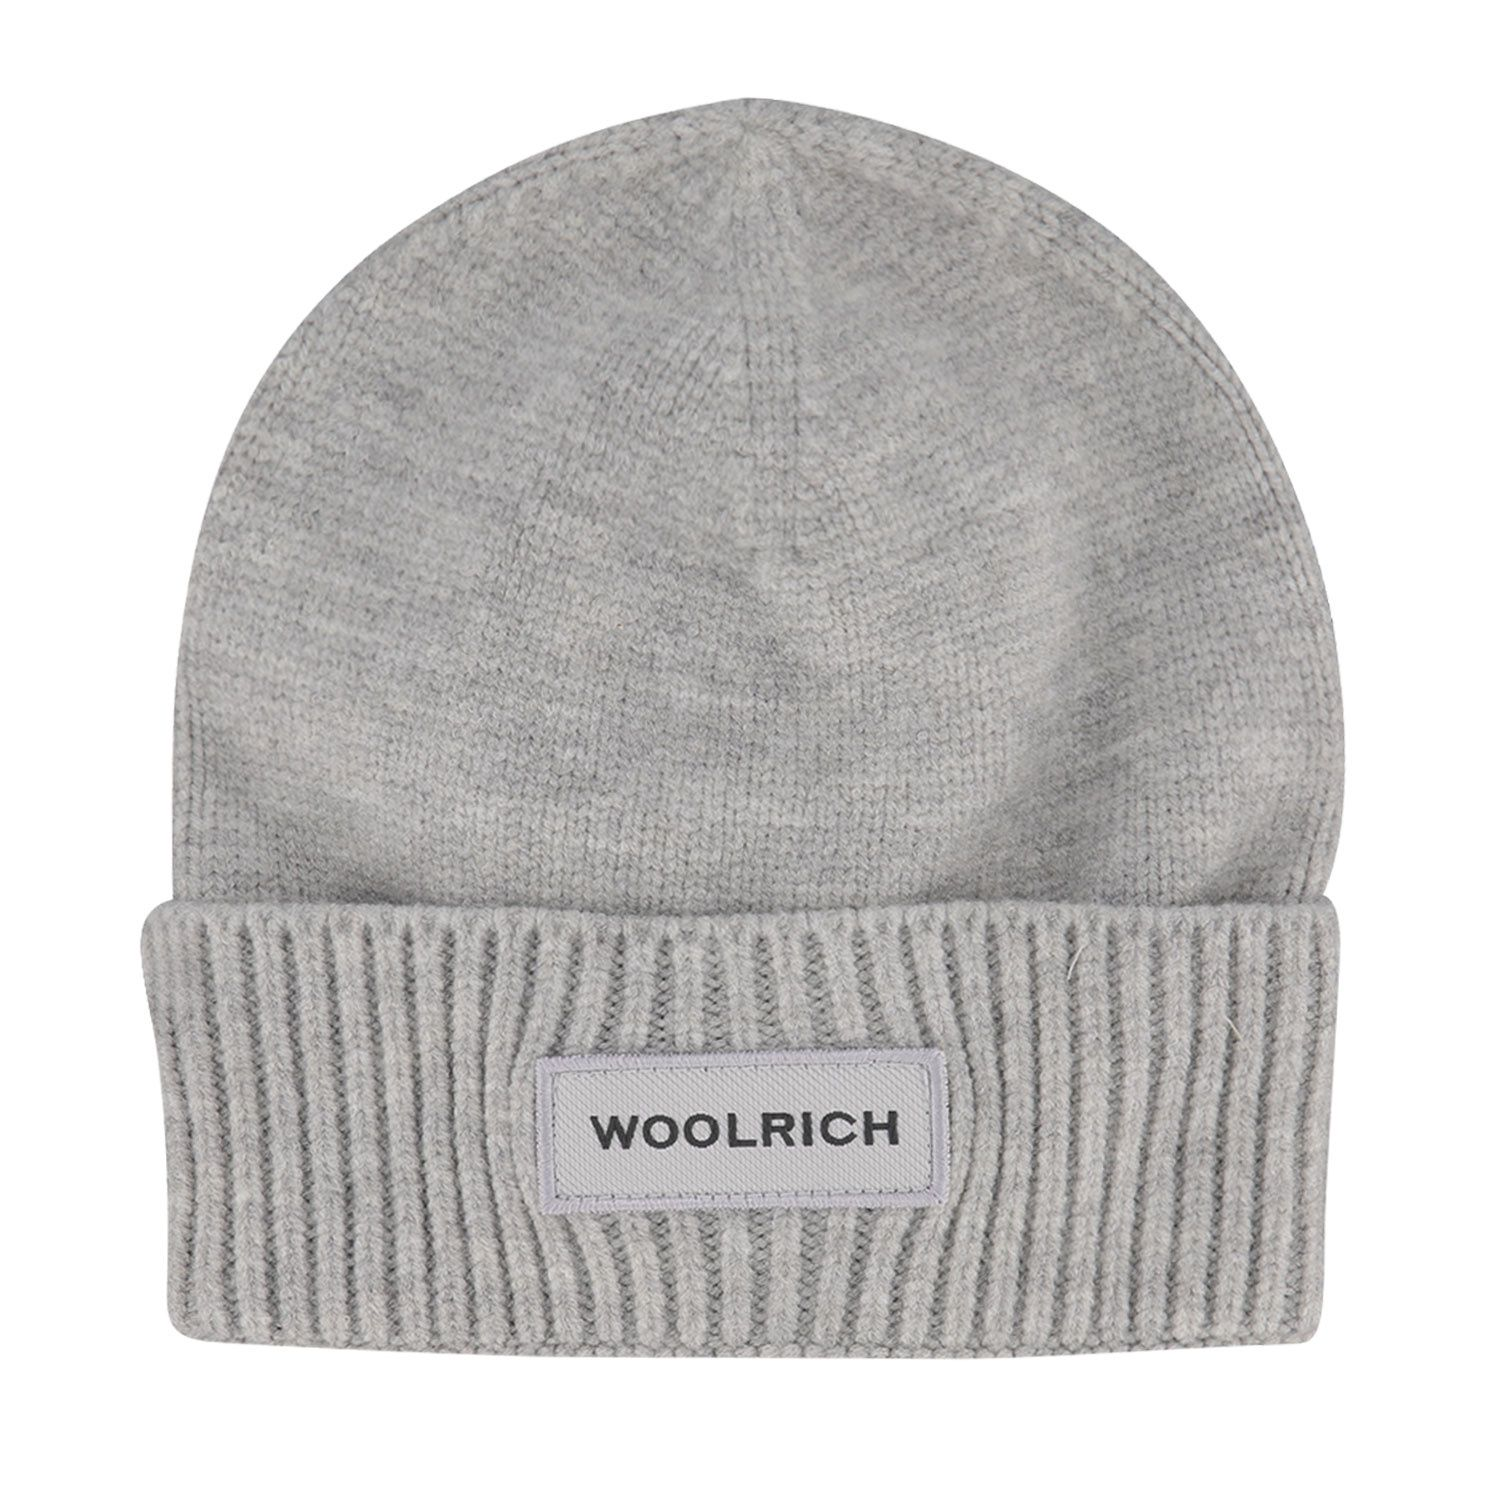 Picture of Woolrich WKAC0096FR baby hat grey